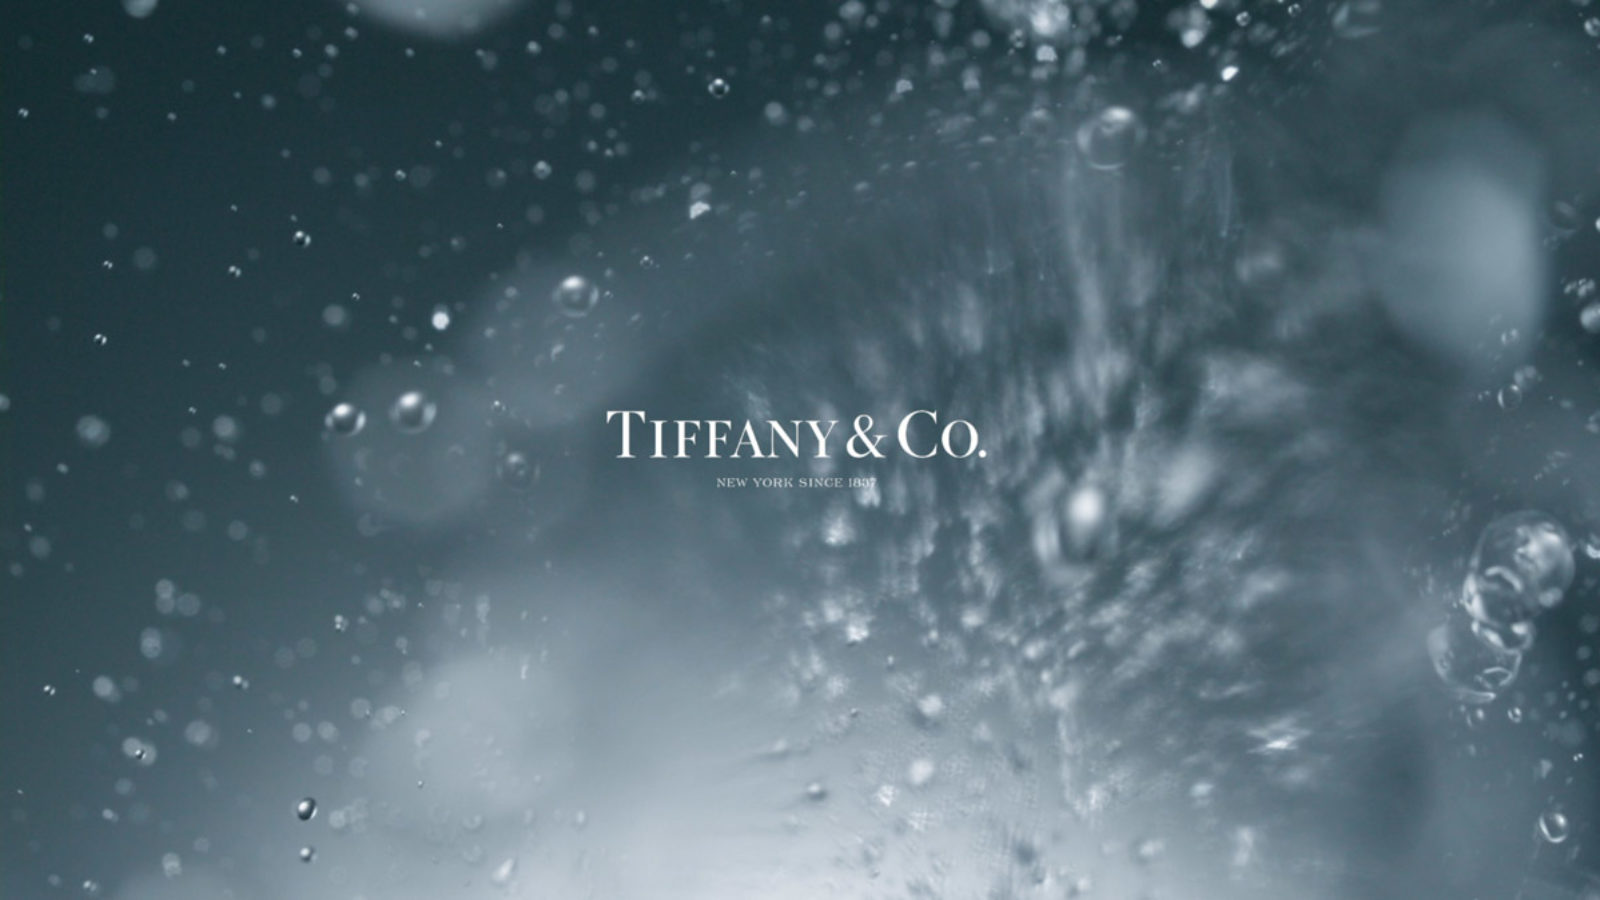 TIFFANY & CO. – ART OF THE SEA